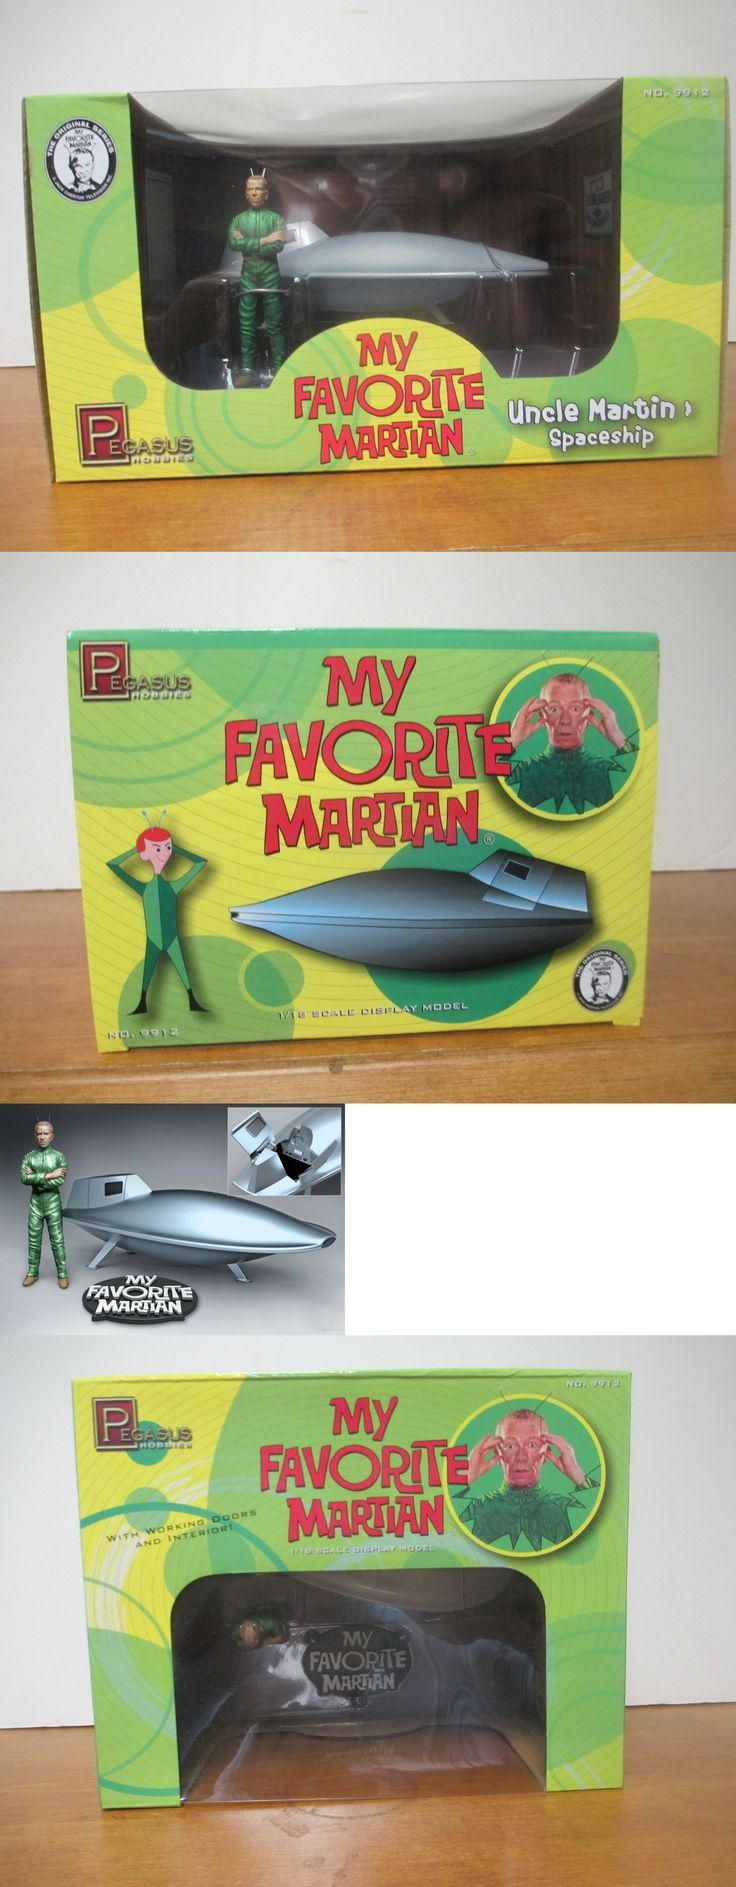 Other Sci-Fi Models and Kits 1193: Pegasus Models # 9912 1 18 My Favorite Martian - Uncle Martins Spaceship Display -> BUY IT NOW ONLY: $45 on eBay!